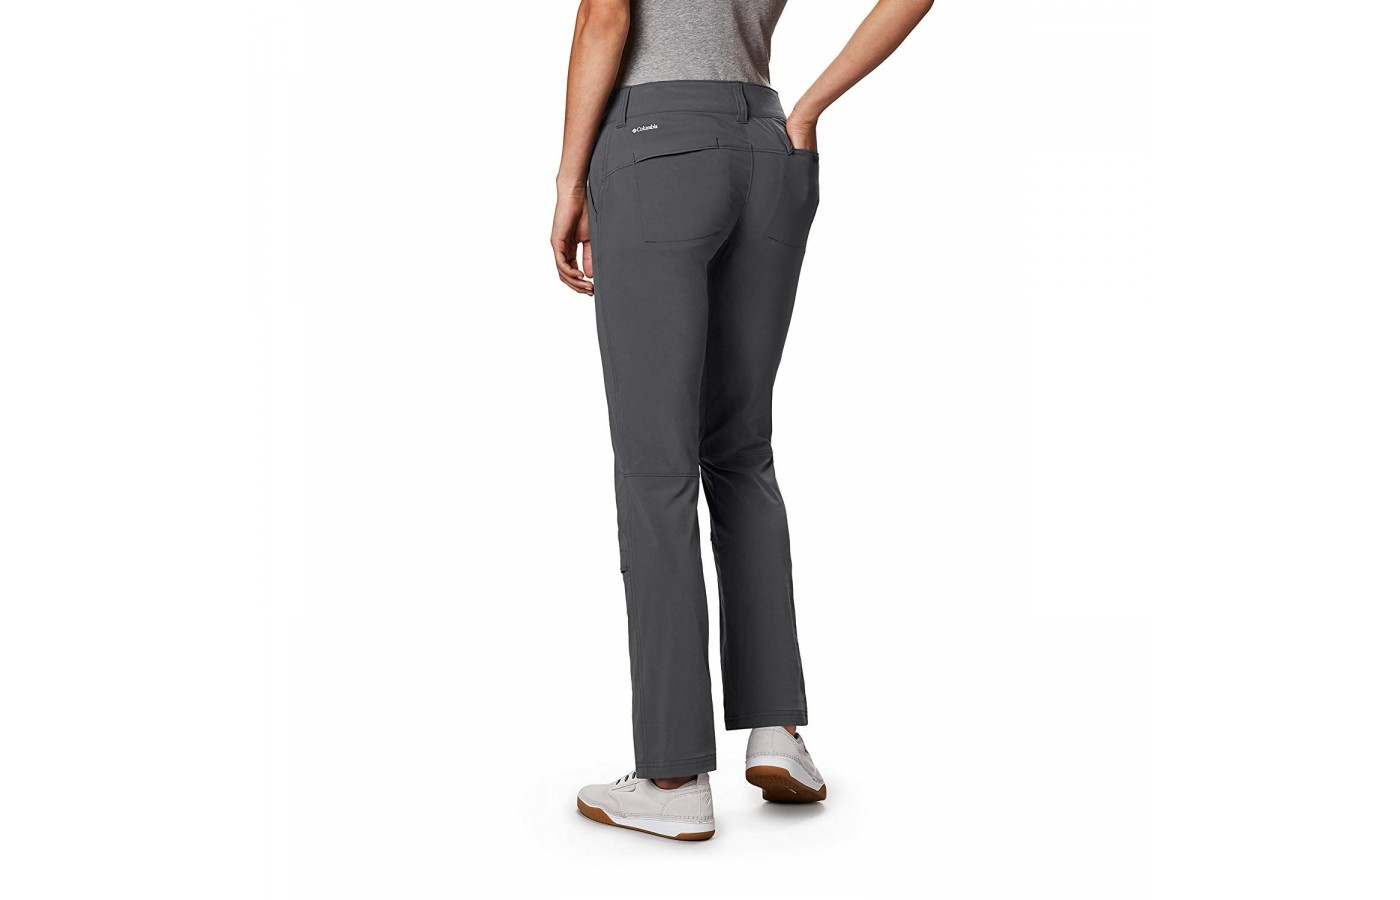 The Columbia Saturday Trail Pant offers a modern straight-leg design.